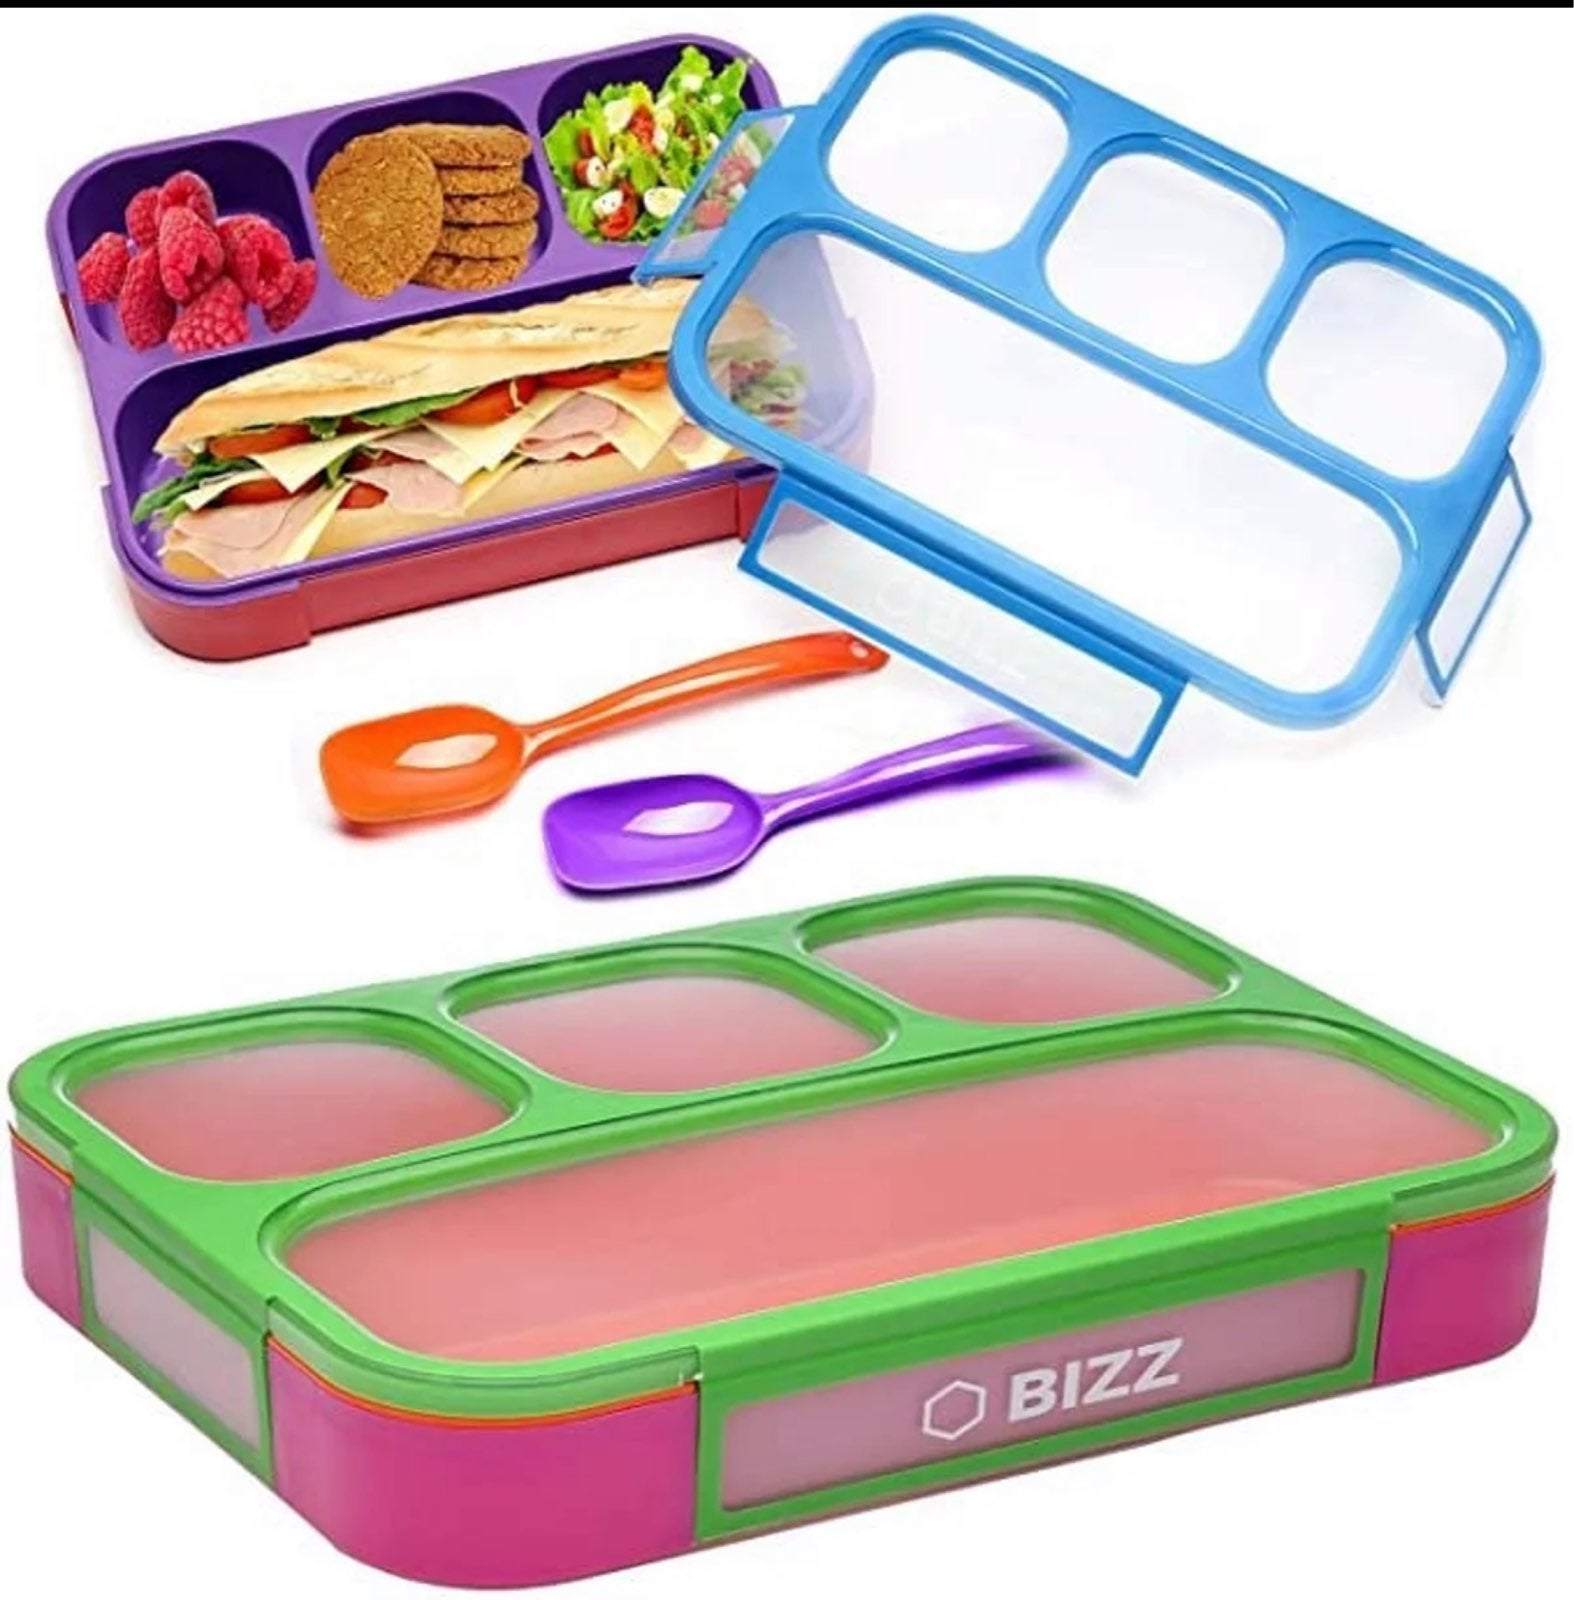 Lunch Box Containers Set (2-Pack)